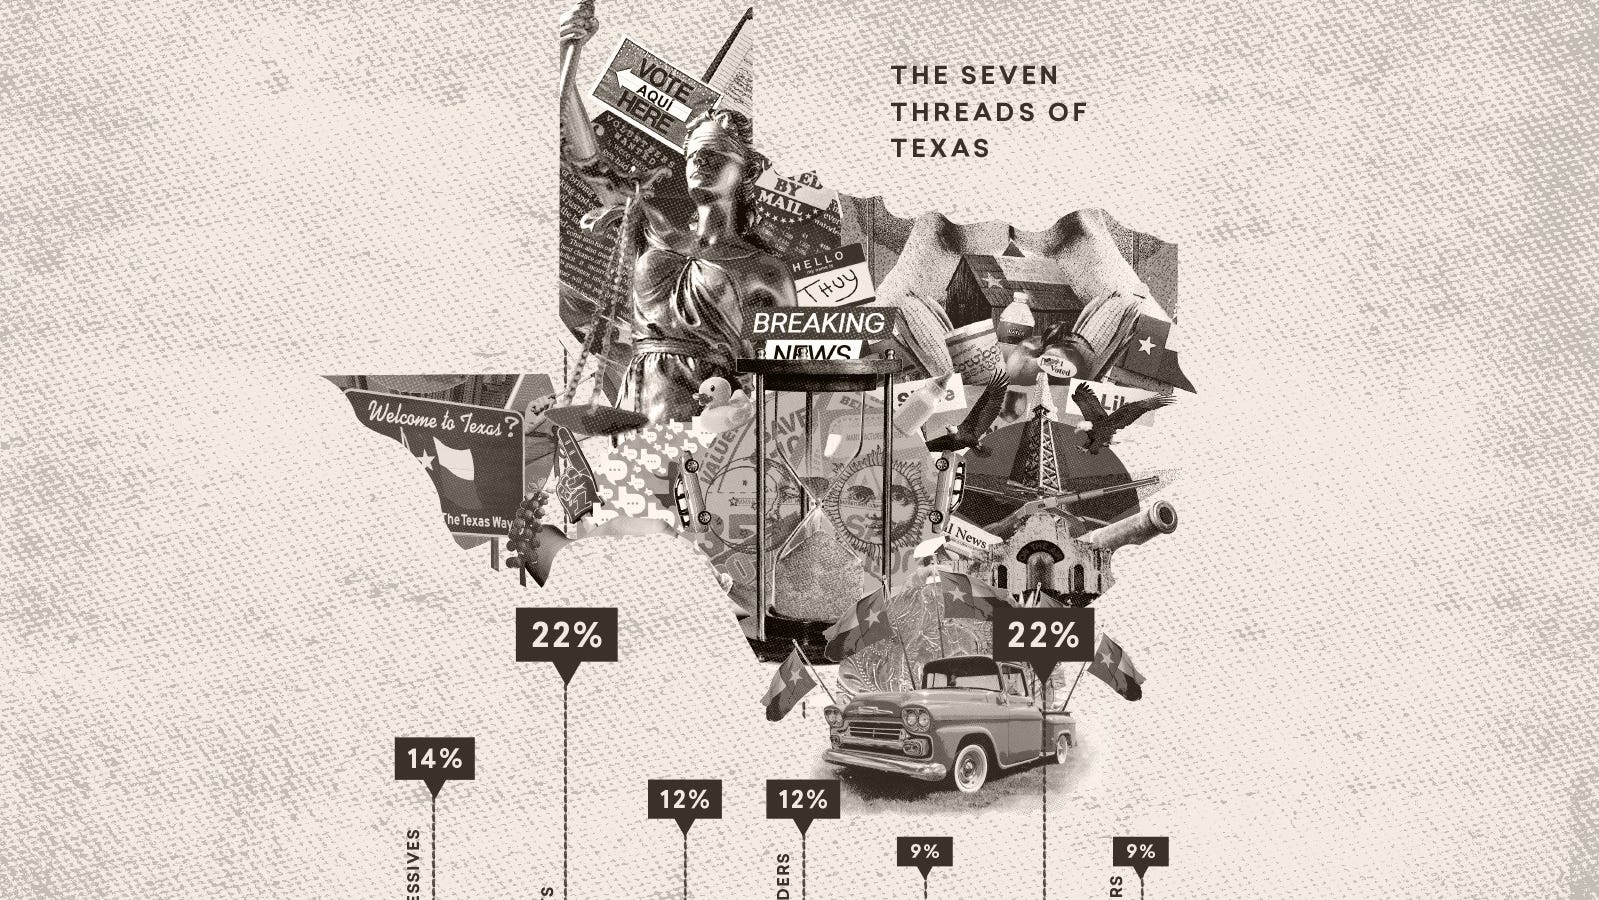 Study shows Texan identity about more than geography